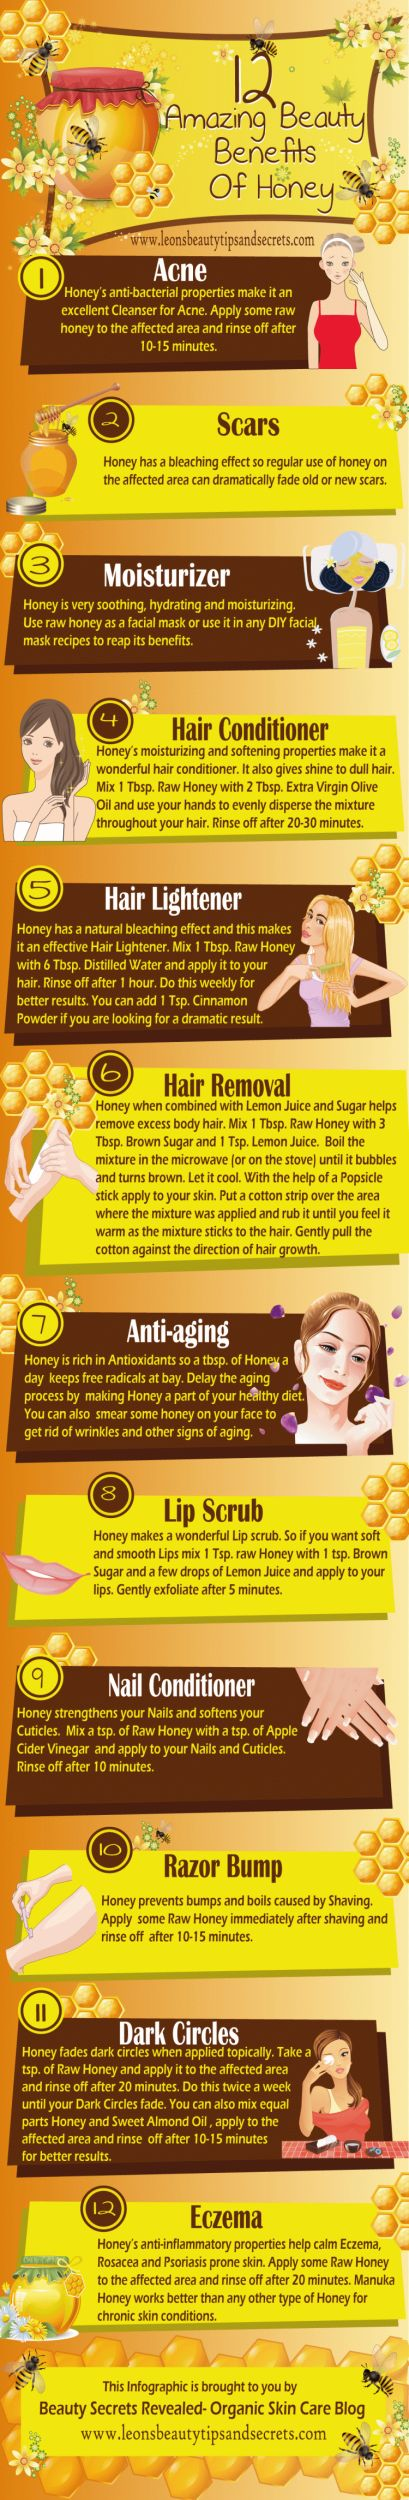 12-Amazing-Beauty-Benefits-Of honey.. Using coconut oil and honey inside the DIY bath projects I have for Christmas!